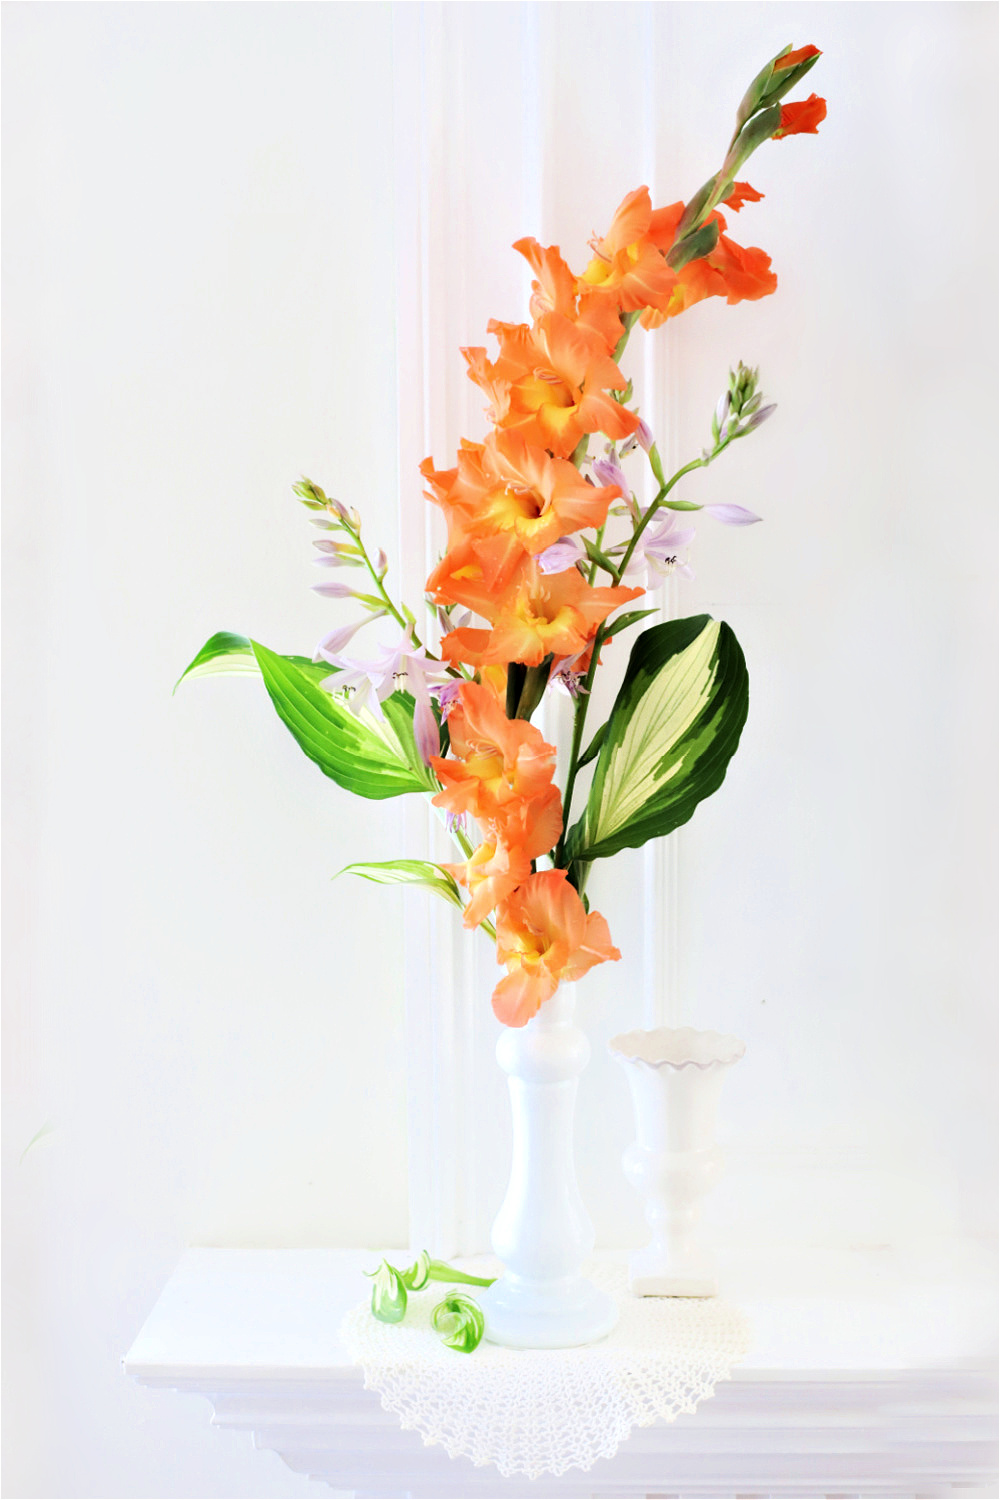 Orange gladiolus stem broken during a storm and gathered after the rain